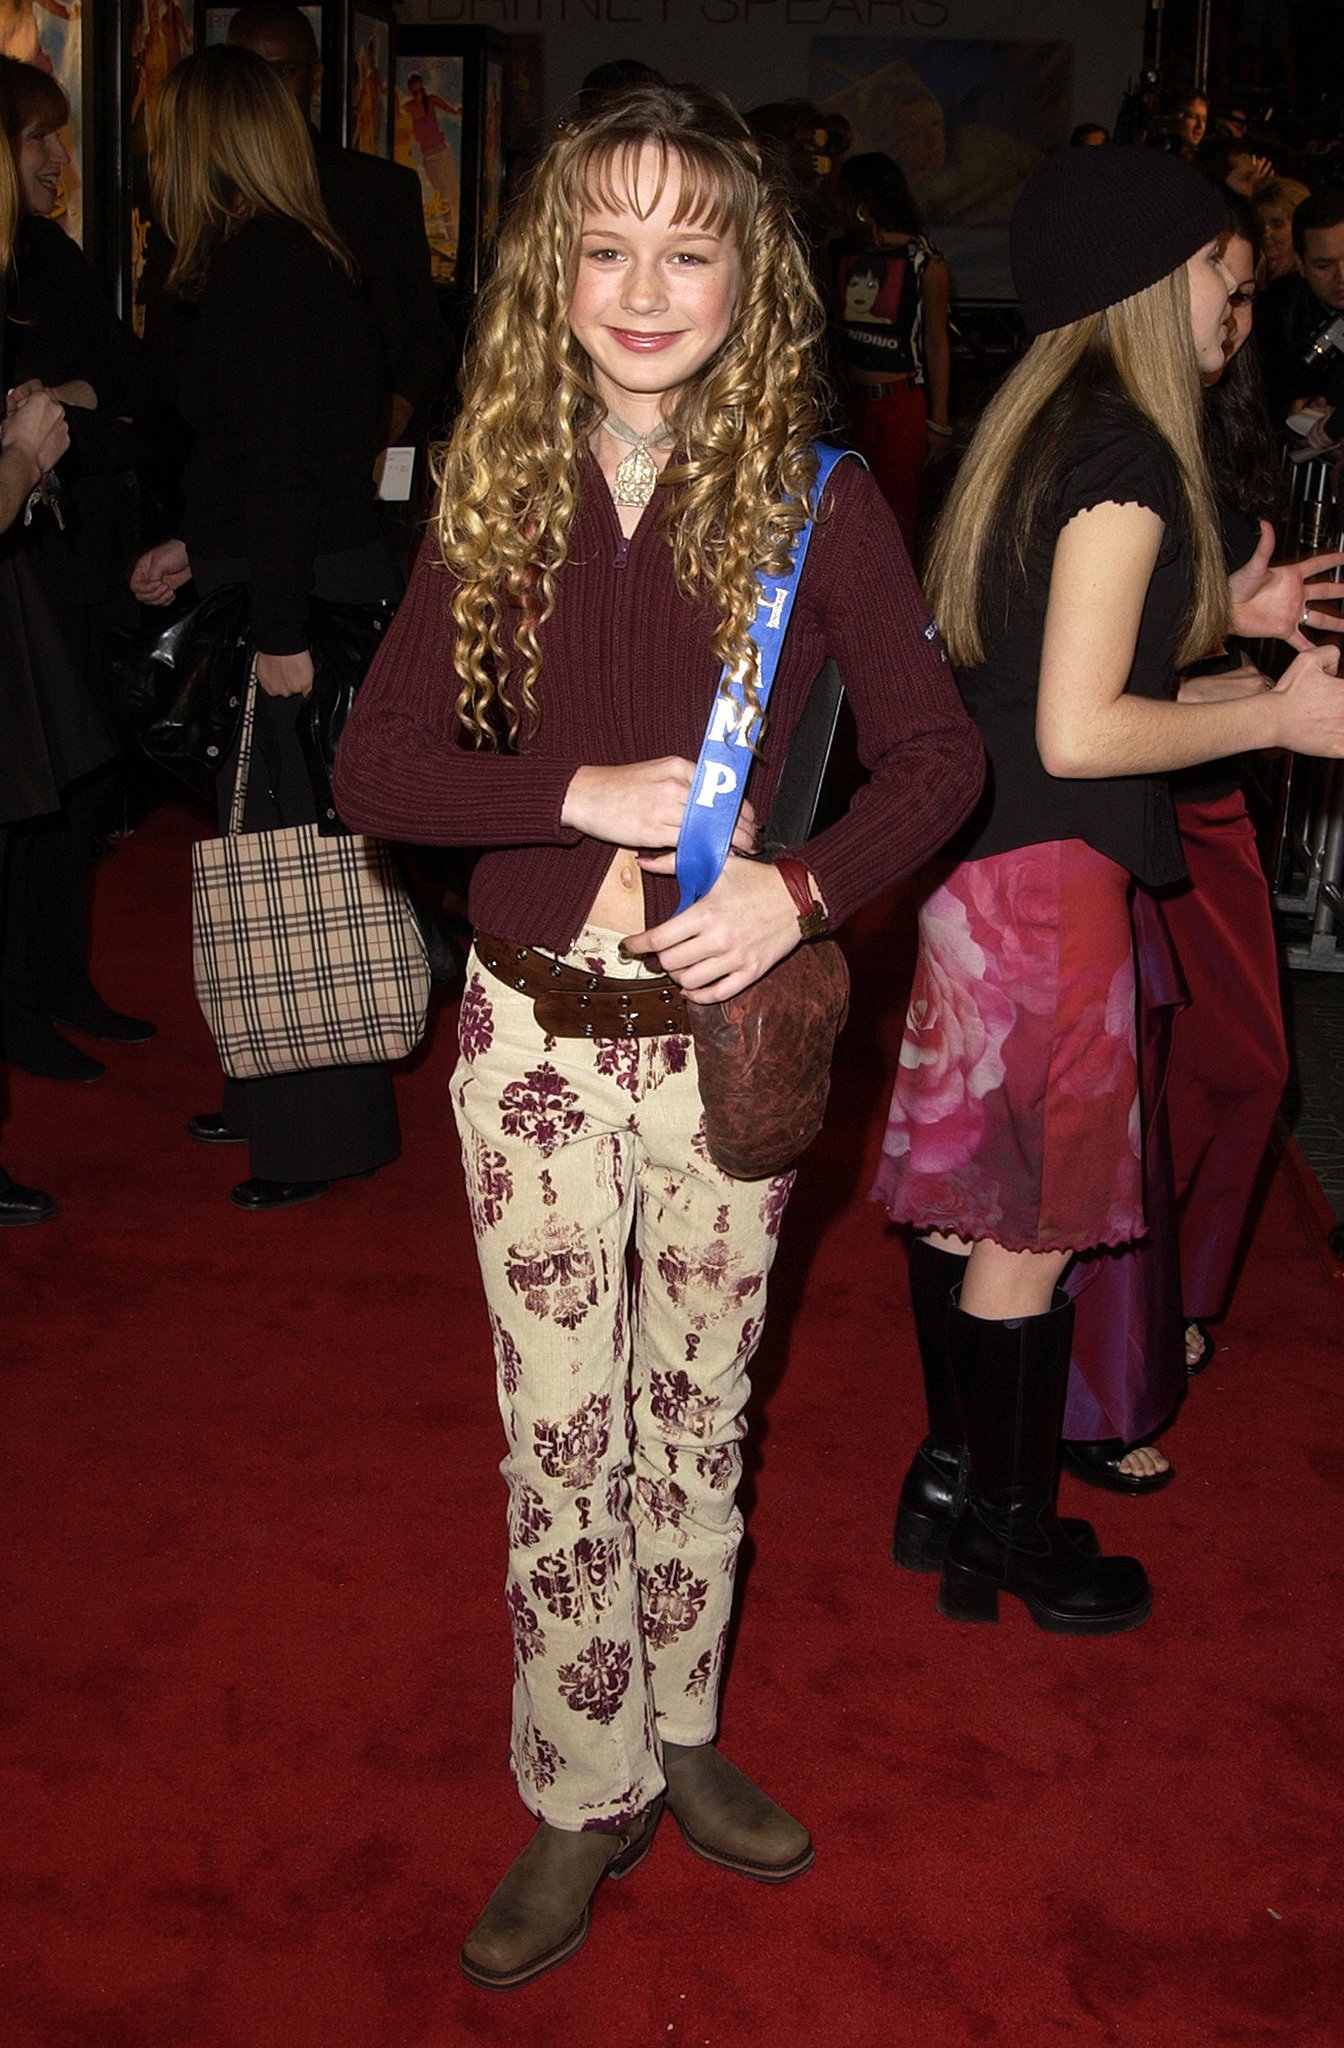 A young Brie Larson went with the flower-power look.